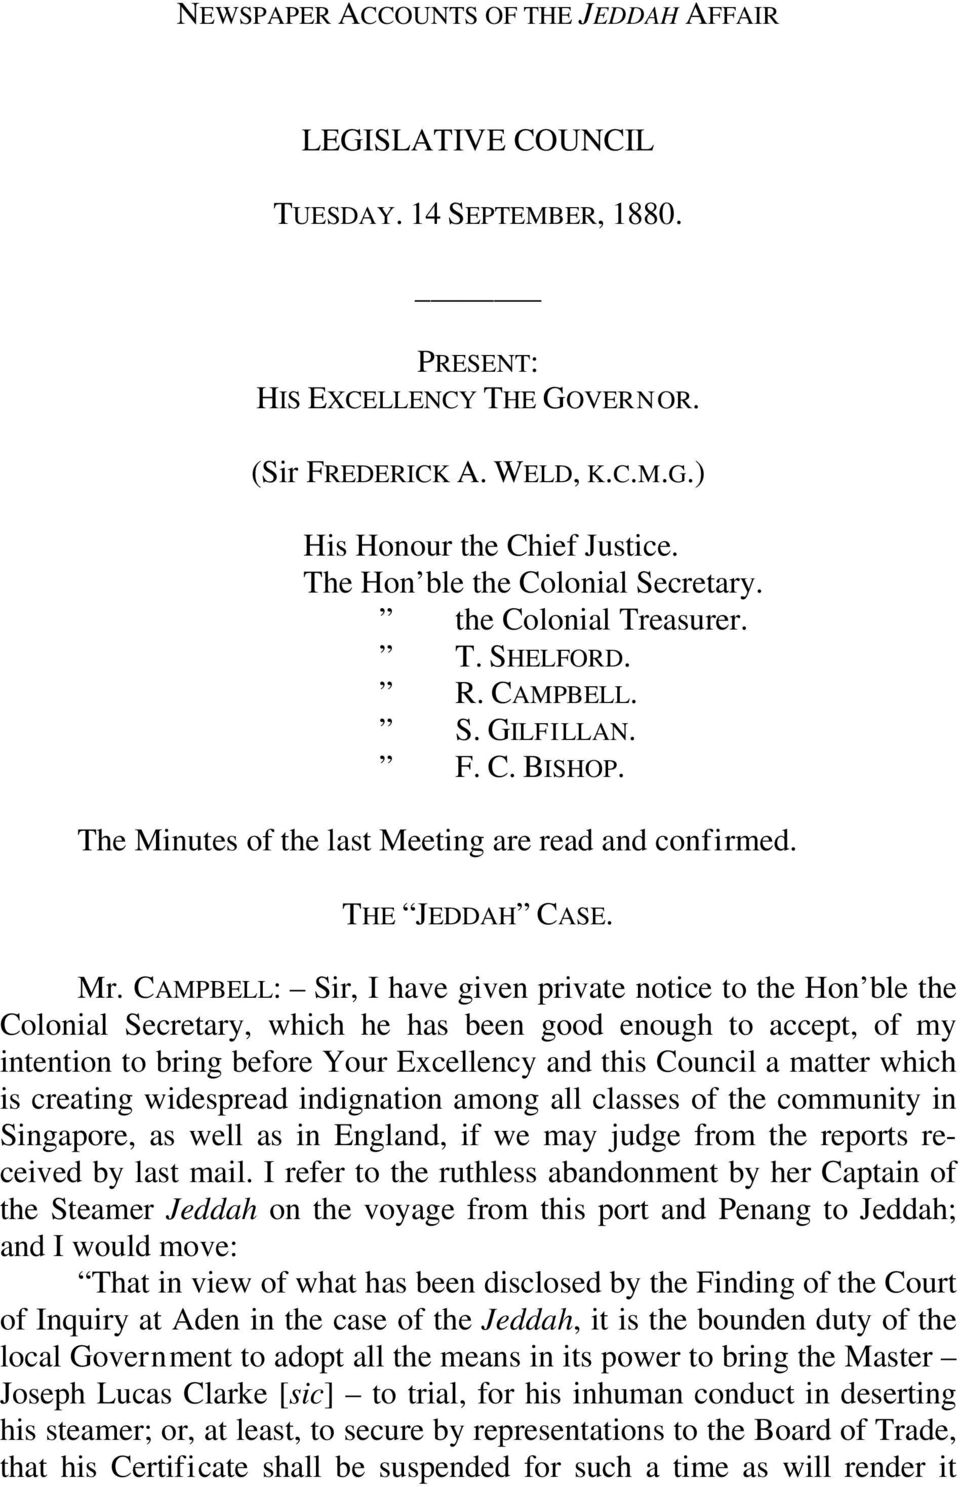 CAMPBELL: Sir, I have given private notice to the Hon ble the Colonial Secretary, which he has been good enough to accept, of my intention to bring before Your Excellency and this Council a matter